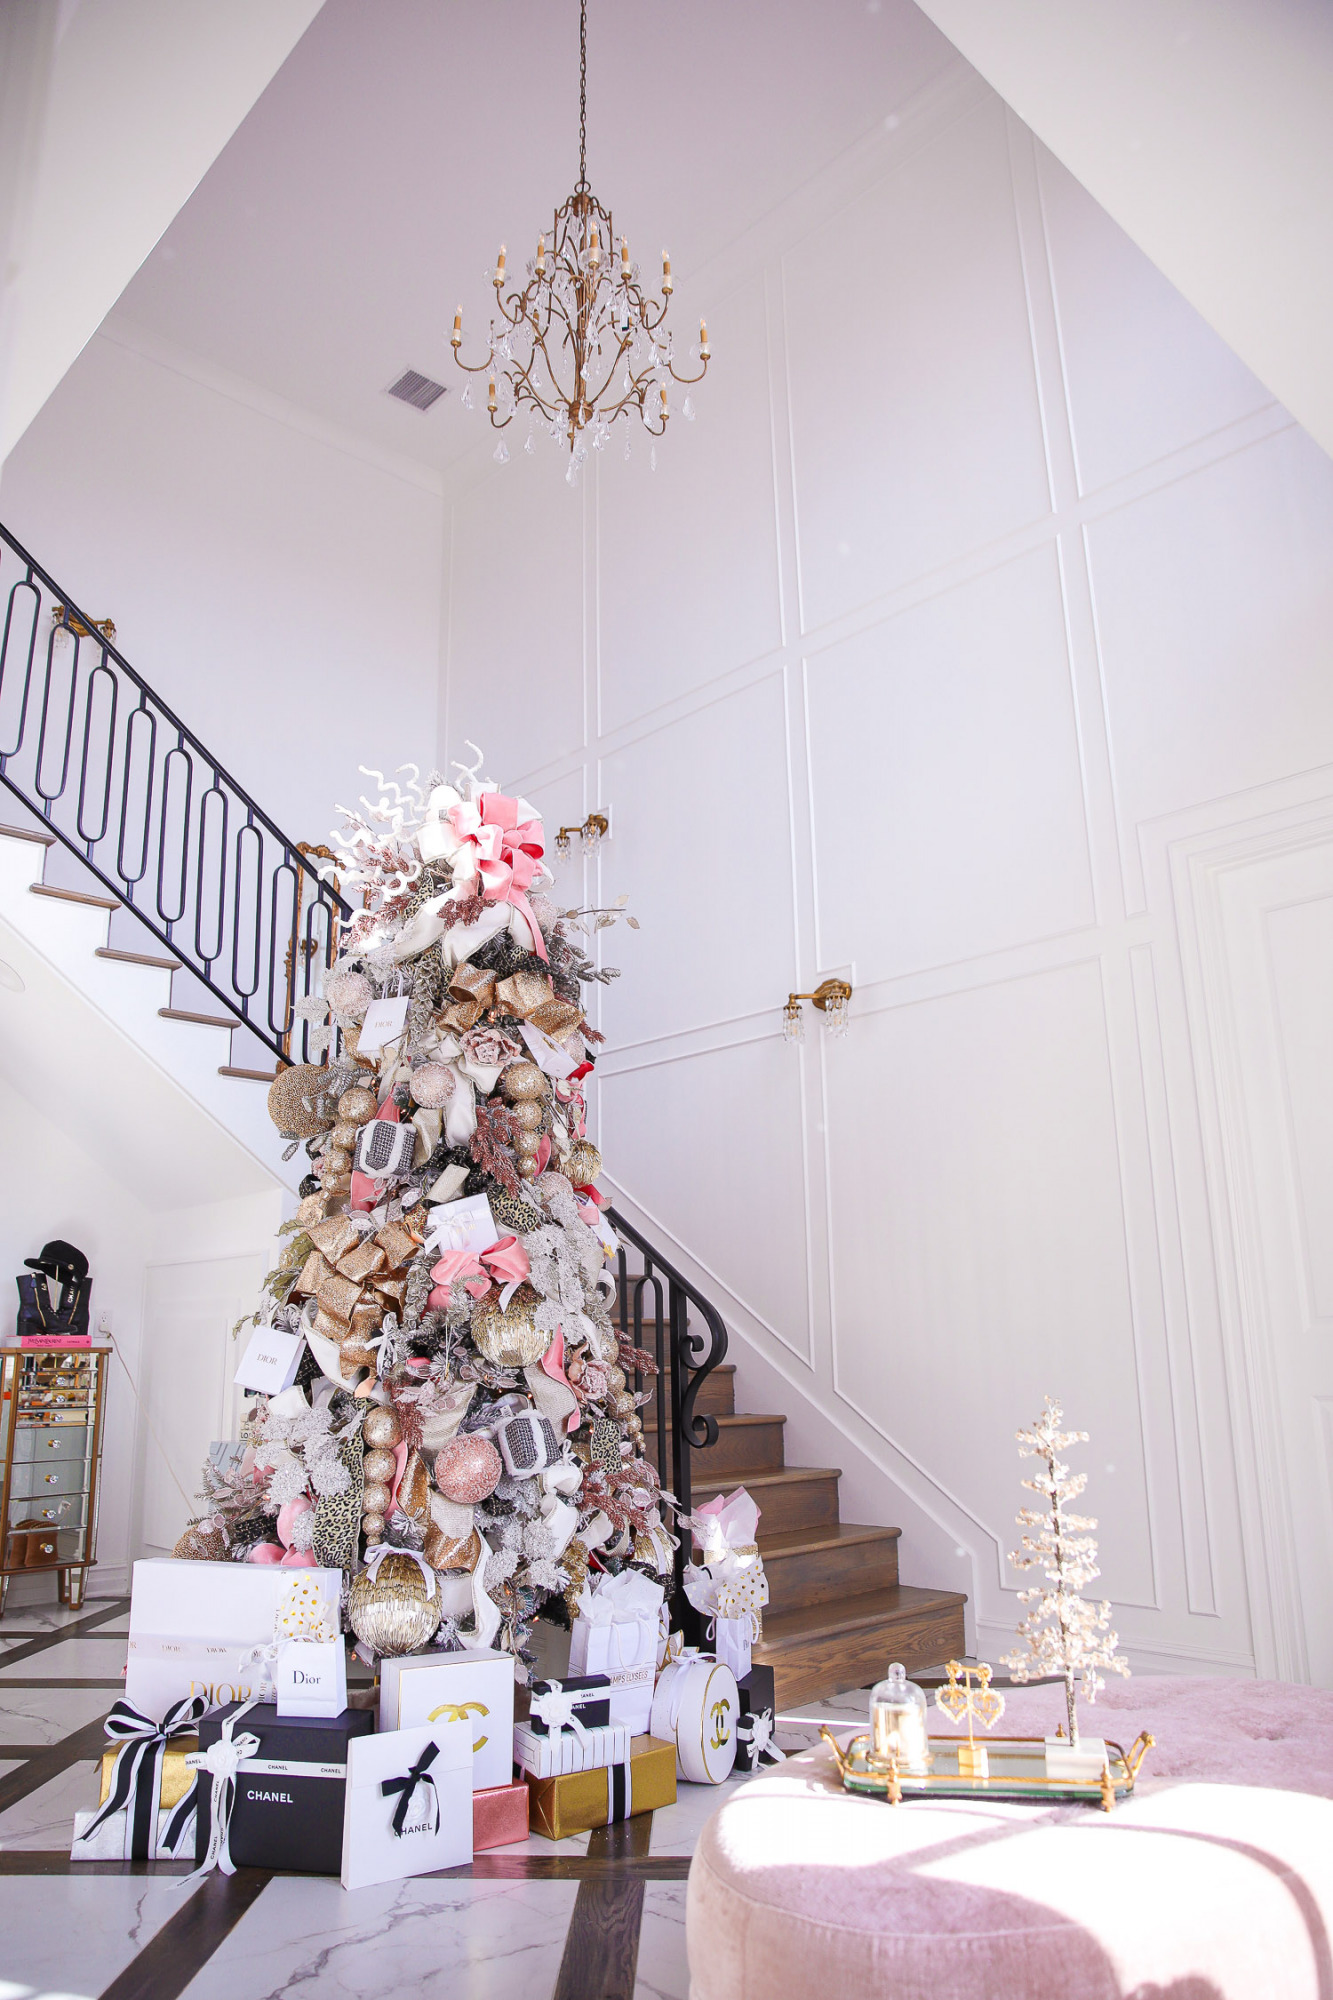 two story closet pinterest, designer chanel christmas tree, unique christmas trees, shop hello holidays, emily gemma christmas tree |Pink and Gold Christmas Tree by popular US life and style blog, The Sweetest Thing: image of a two story closet decorated with pink and gold Christmas Tree with high end retailer bags underneath.